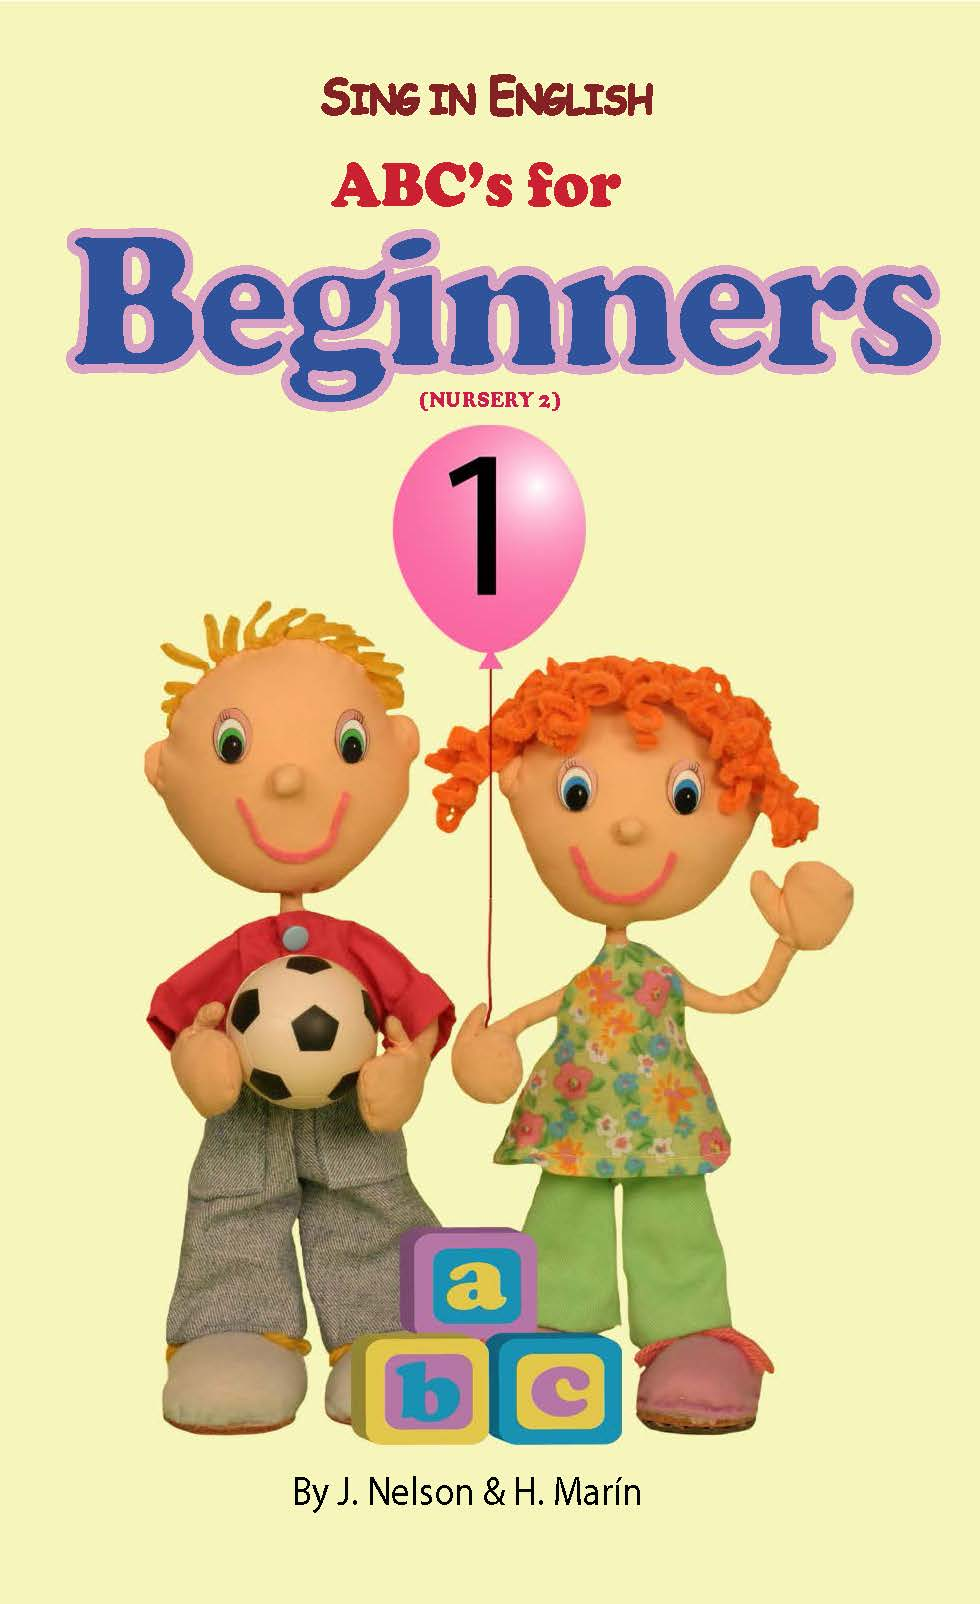 Sing in English ABC's for Beginners Volume 1 Downloadable Album-Book Set